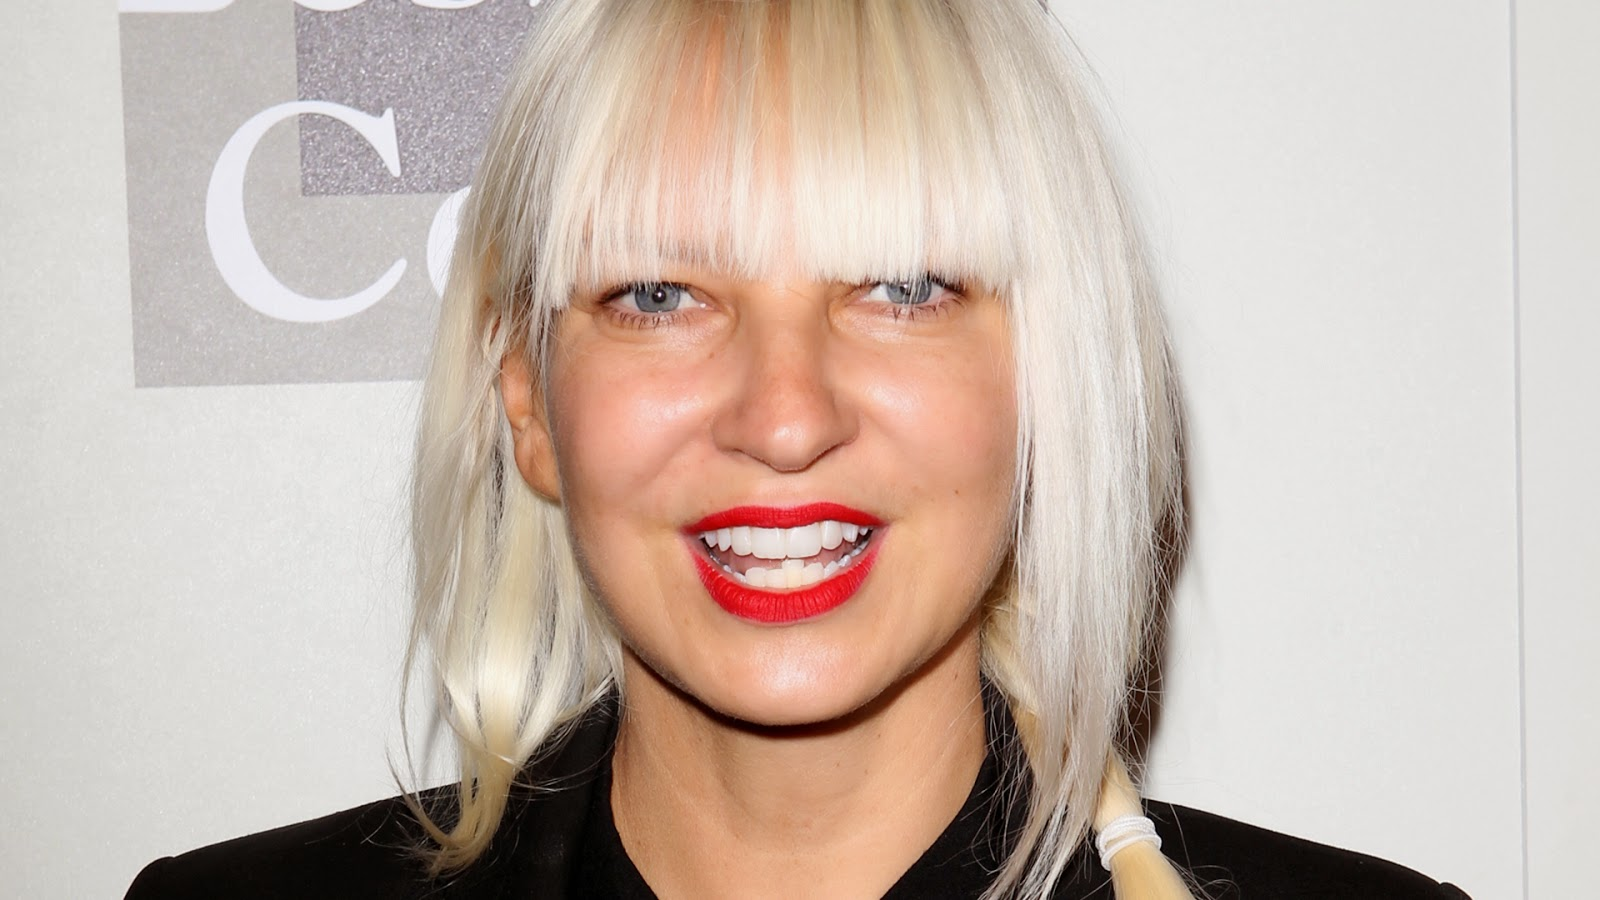 Sia Furler new video Fire Meet Gasoline with Heidi Klum